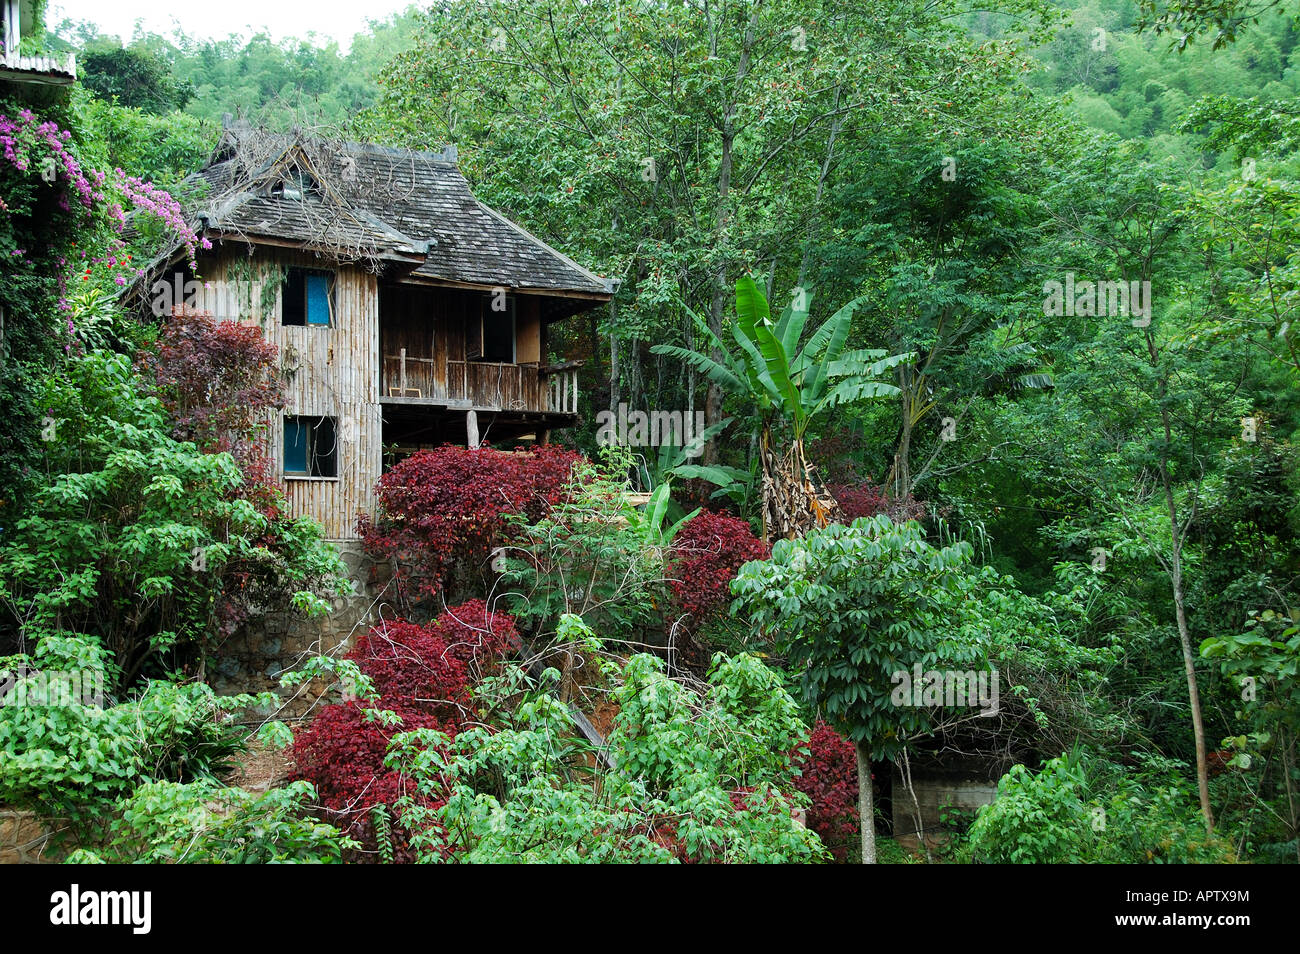 A traditional wooden house in the lush green of the xishuanbanna rain forest xishuanbanna district yunnan china